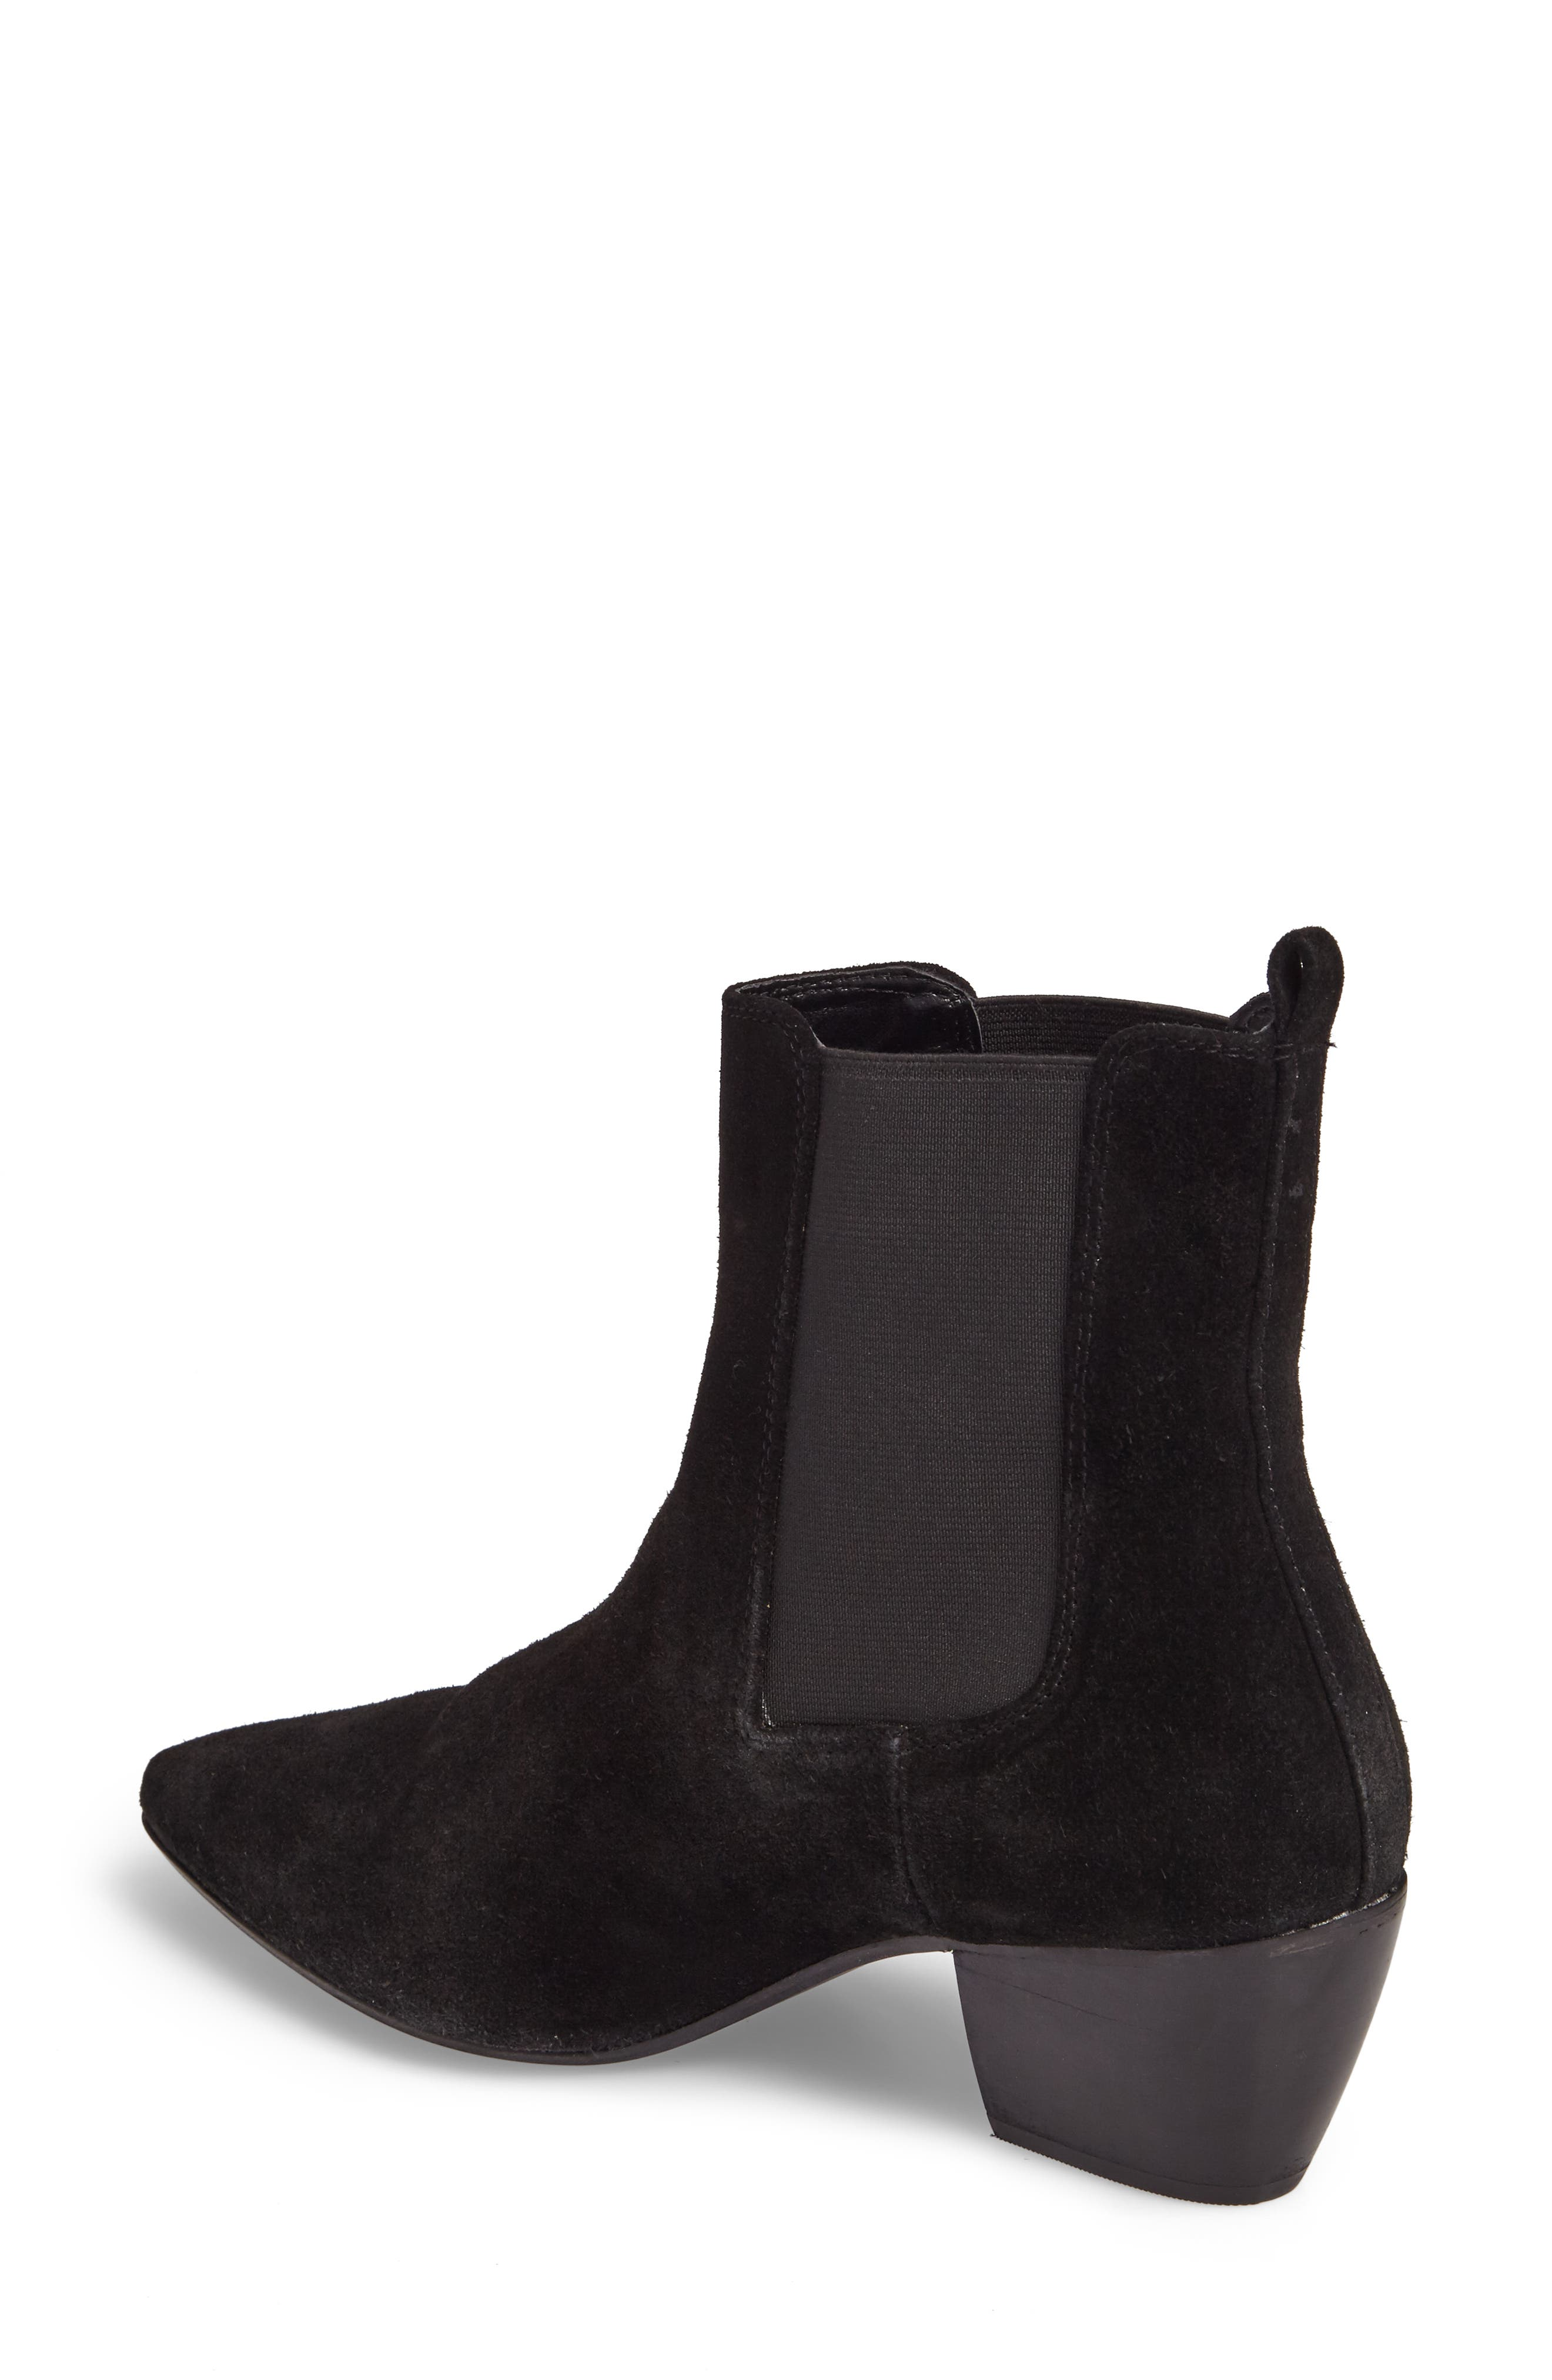 Bounty Suede Pointy Toe Bootie,                             Alternate thumbnail 2, color,